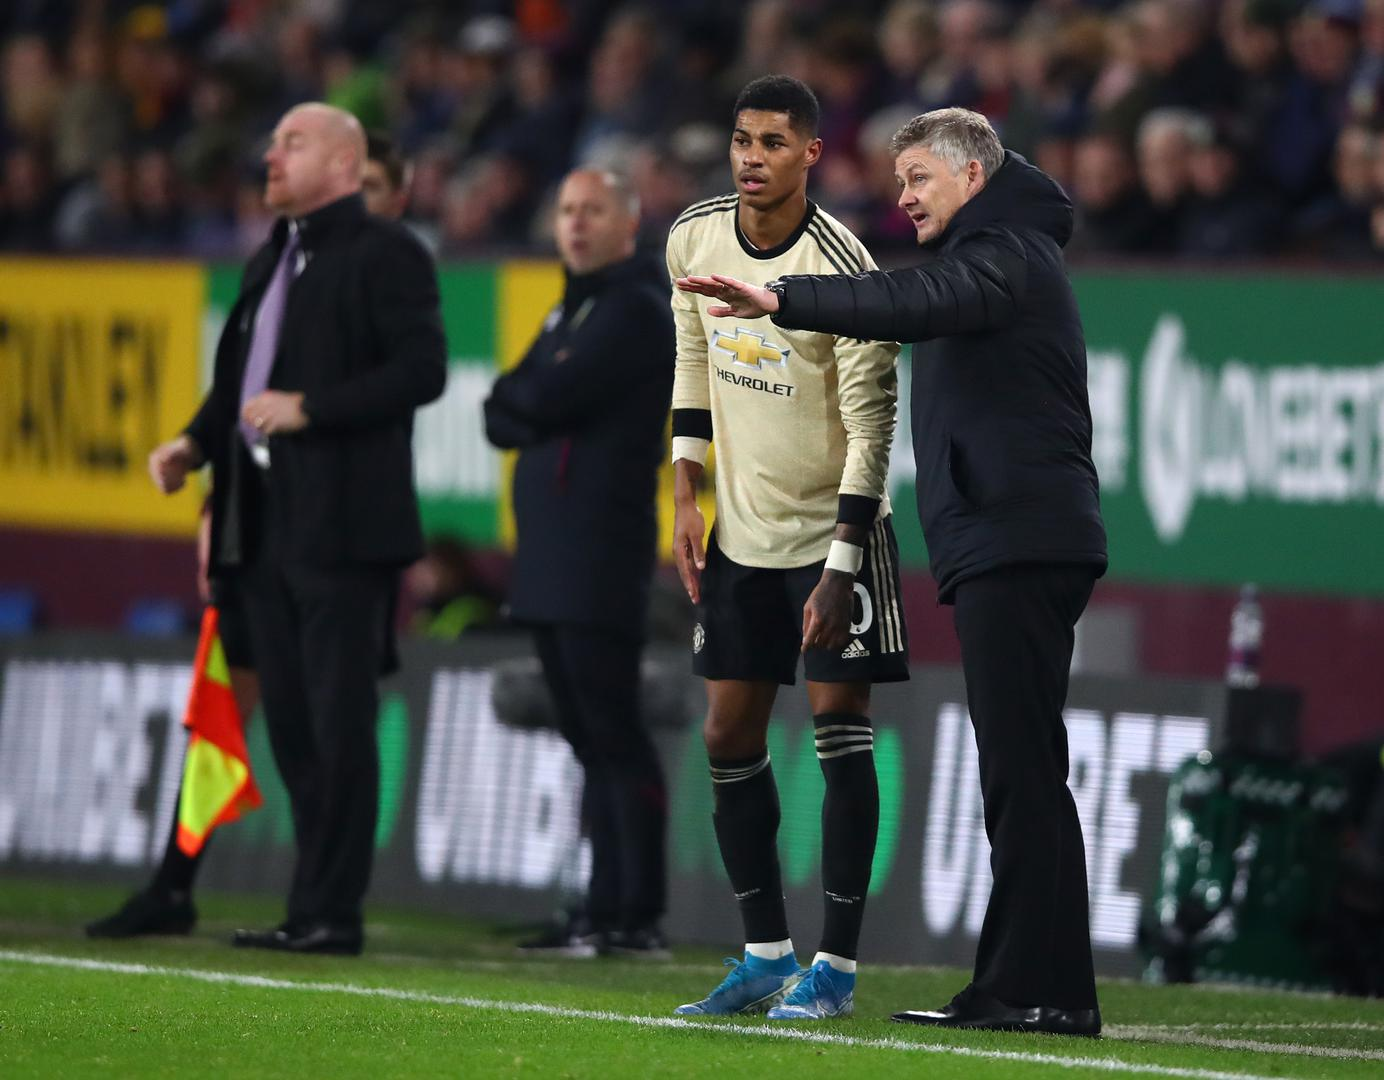 Ole Gunnar Solskjaer gives instructions to Marcus Rashford